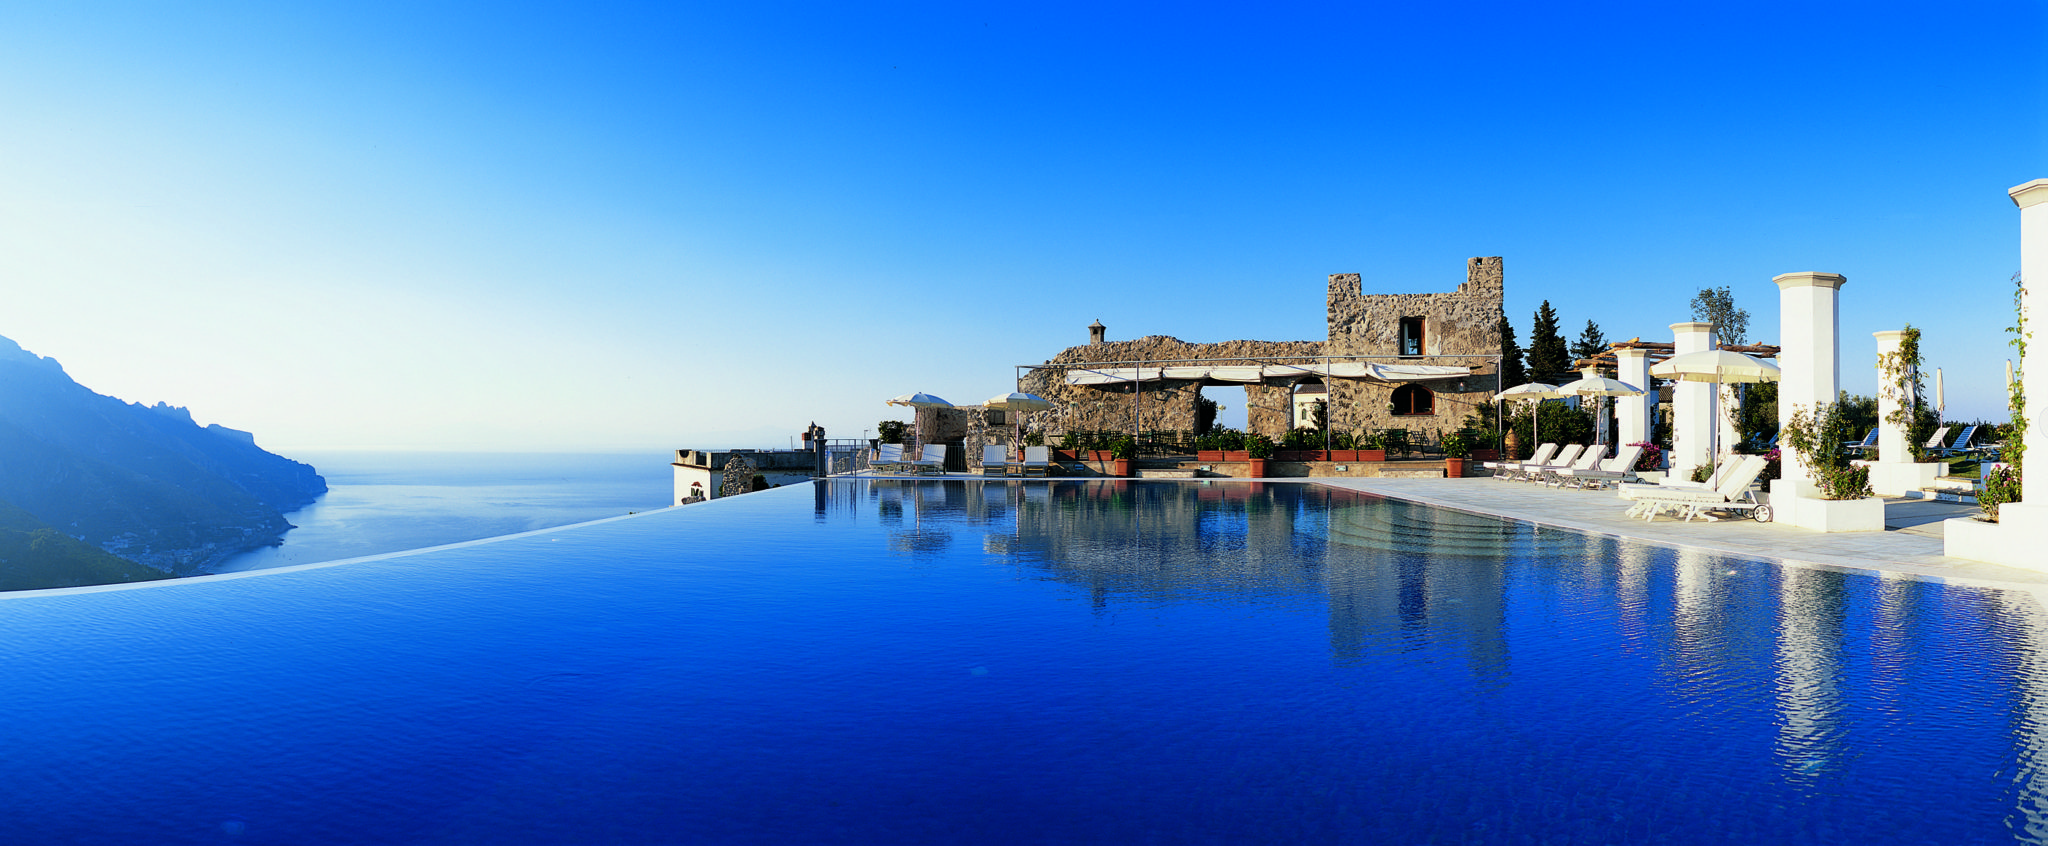 Hotel Caruso Italy Infinity Pools